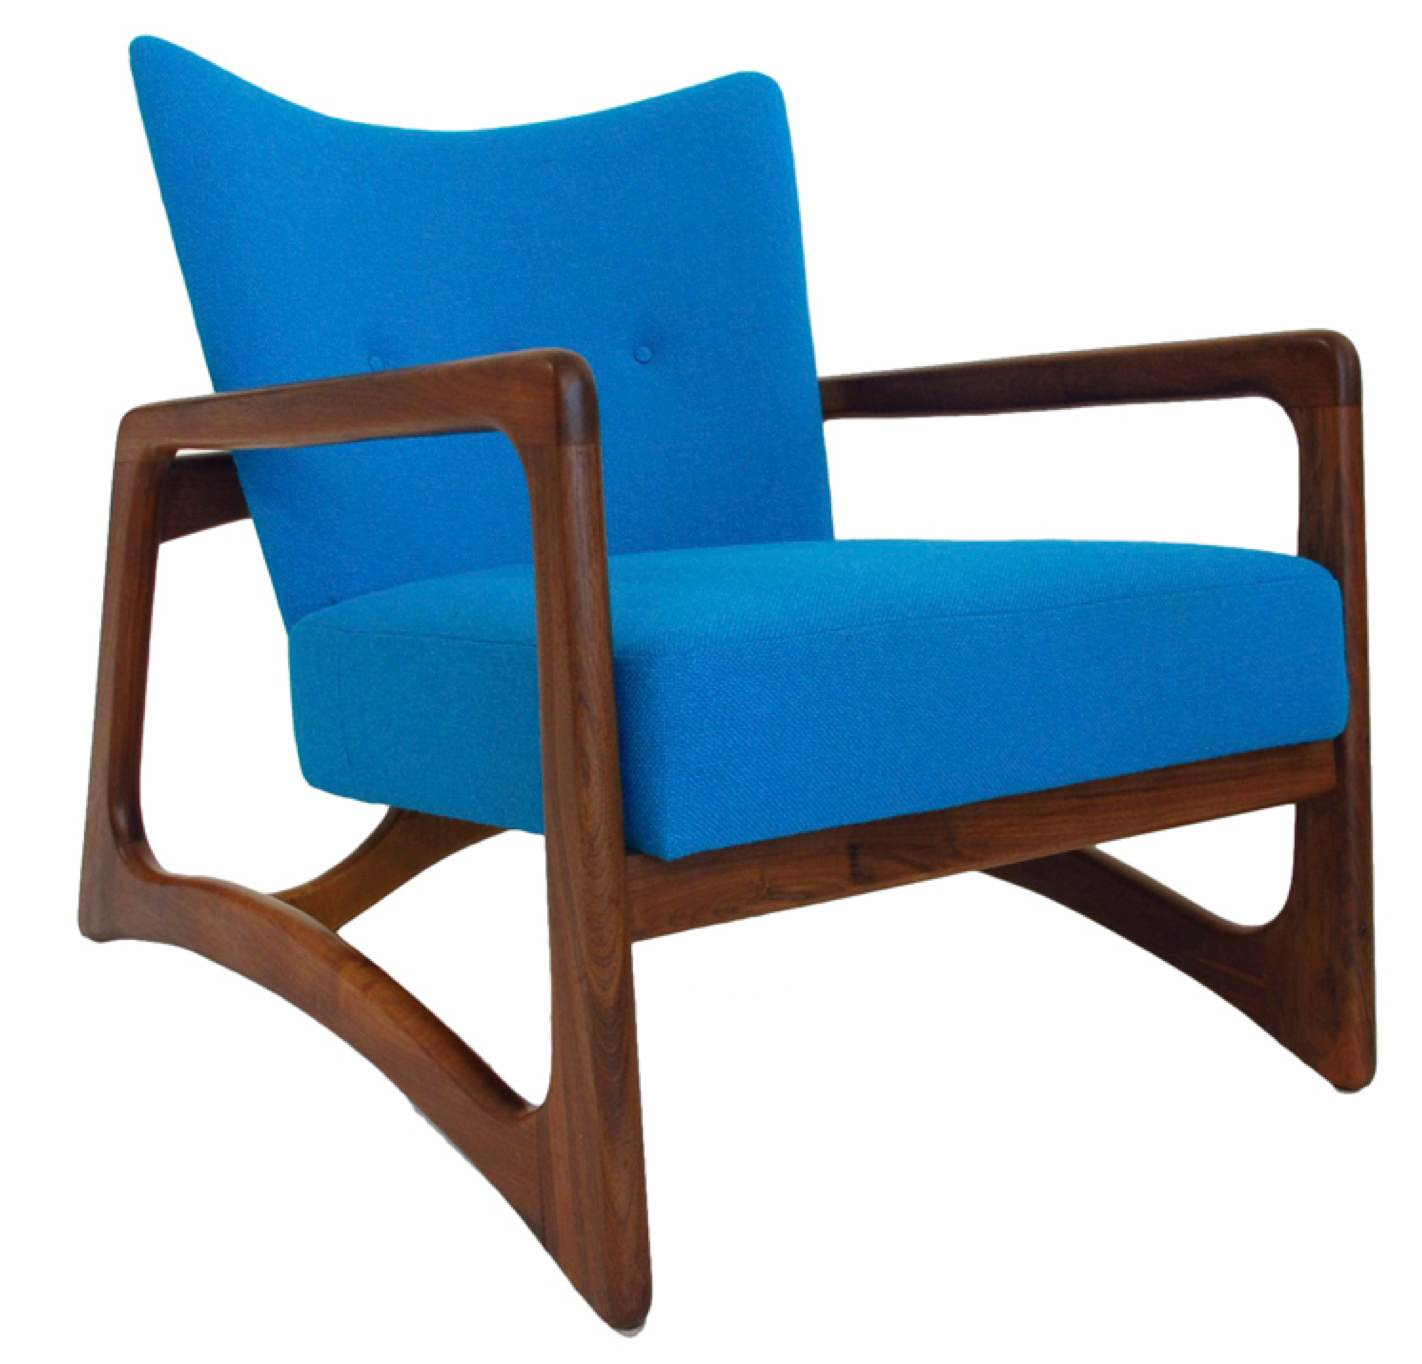 Midcentury Chairs Adrian Pearsall Craft Associates Inc Mid Century